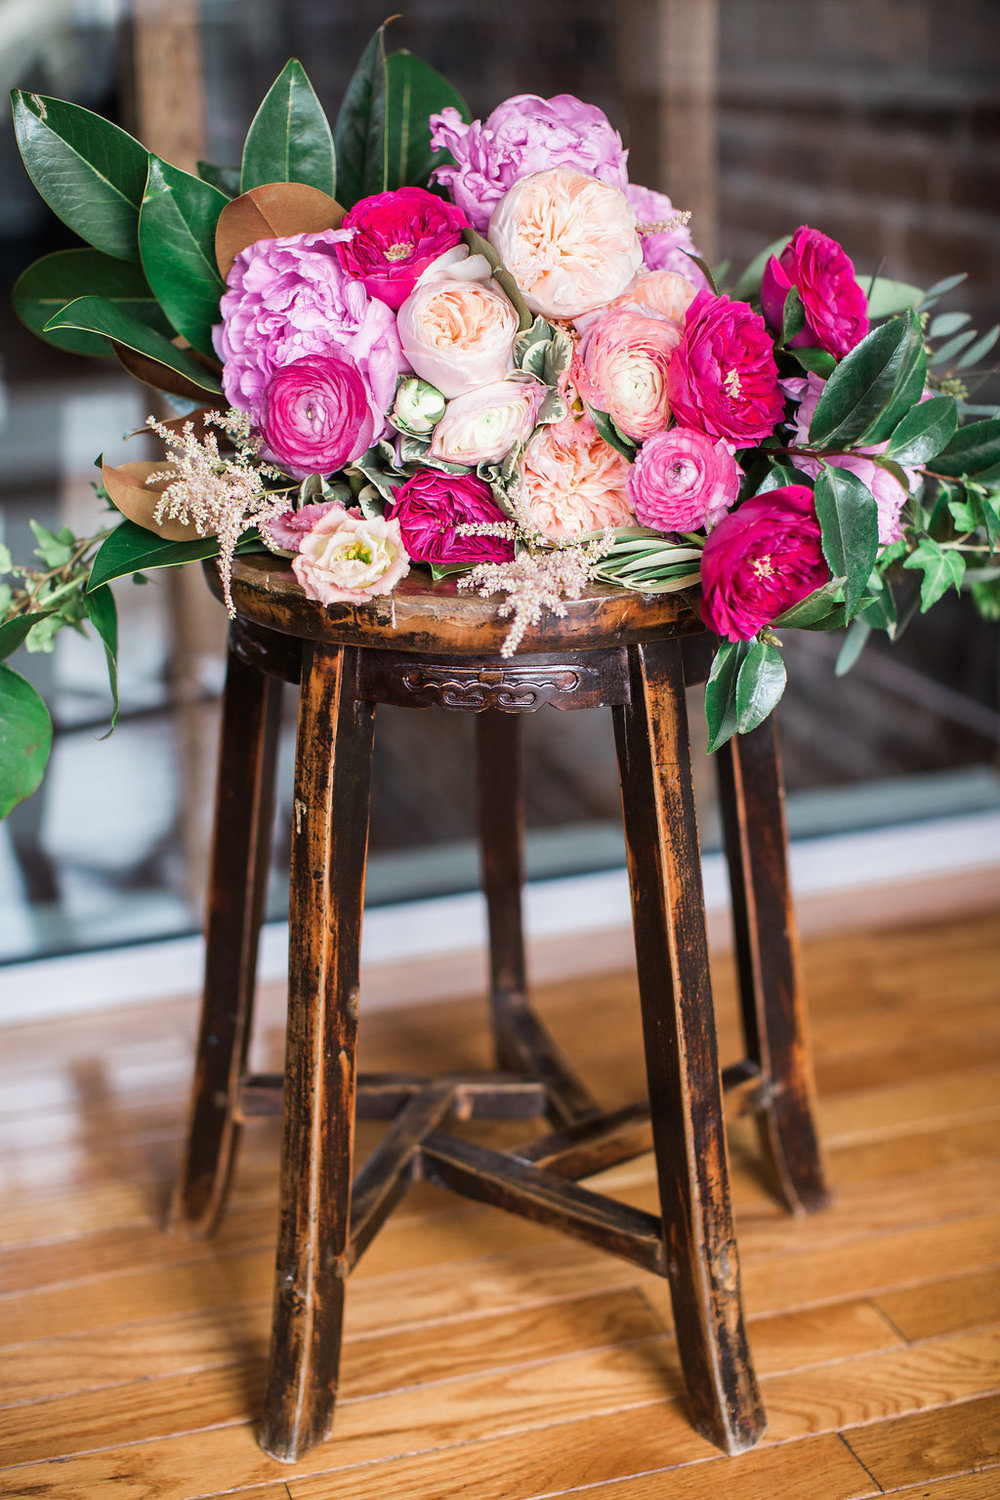 helen-tom-apt-b-photography-savannah-weddings-ivory-and-beau-bridal-boutique-savannah-bridal-boutique-savannah-florist-georgia-state-railroad-museum-wedding-colorful-rustic-wedding-savannah-florist-4.JPG